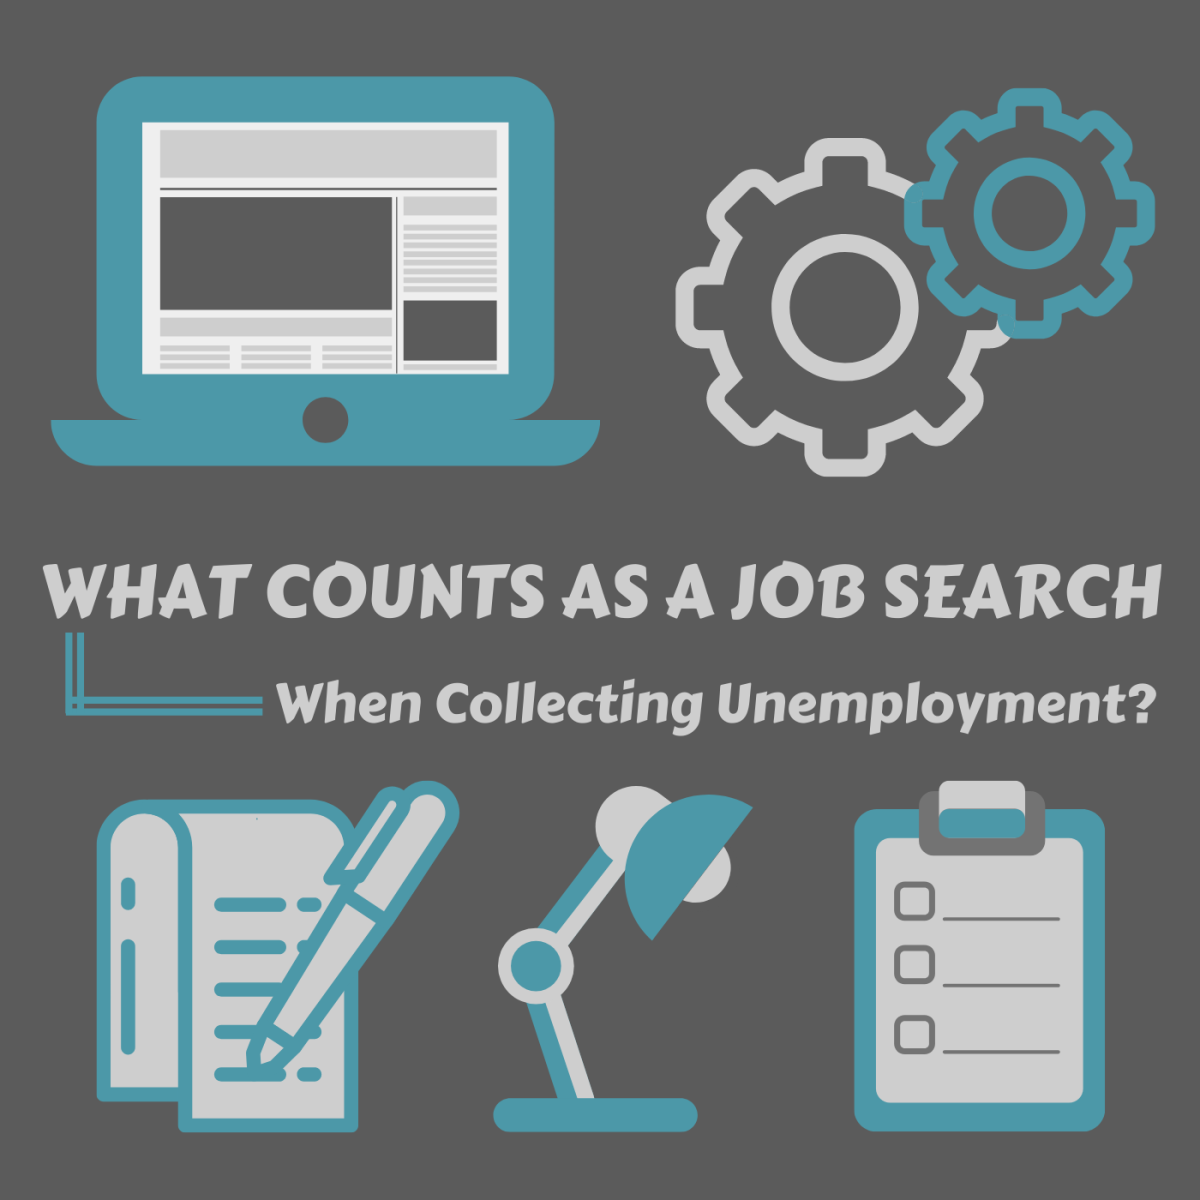 What Qualifies as a Job Search for Collecting Unemployment?